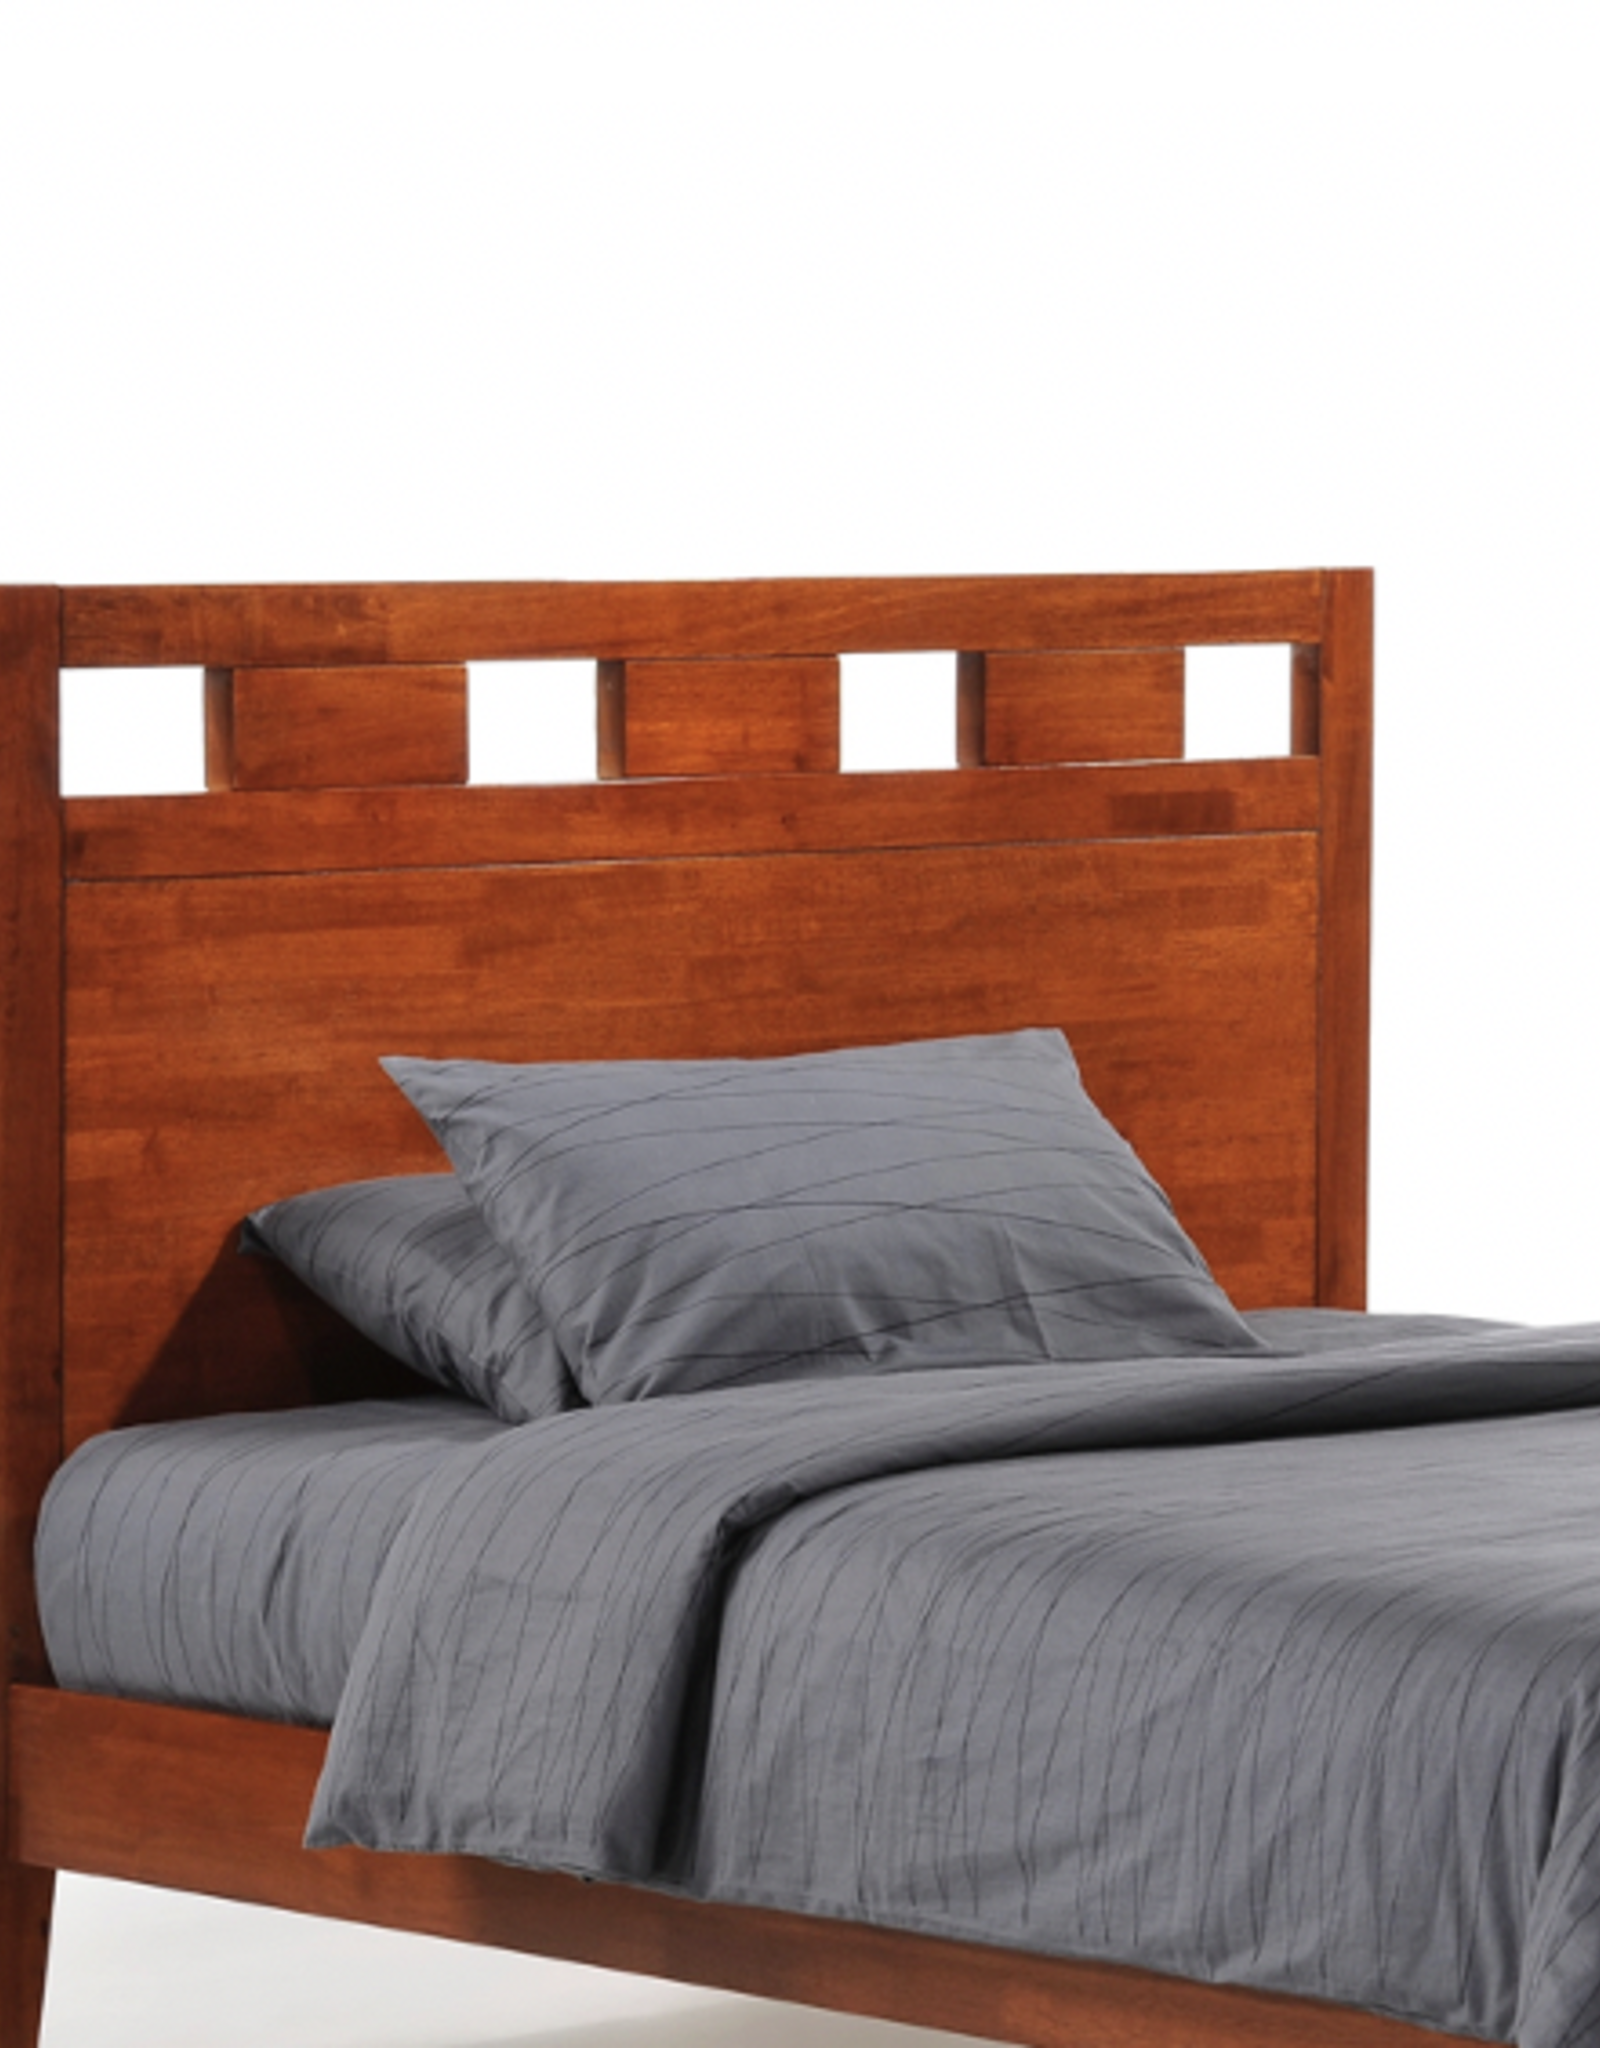 Tamarind Headboard - Comes in Five Colors